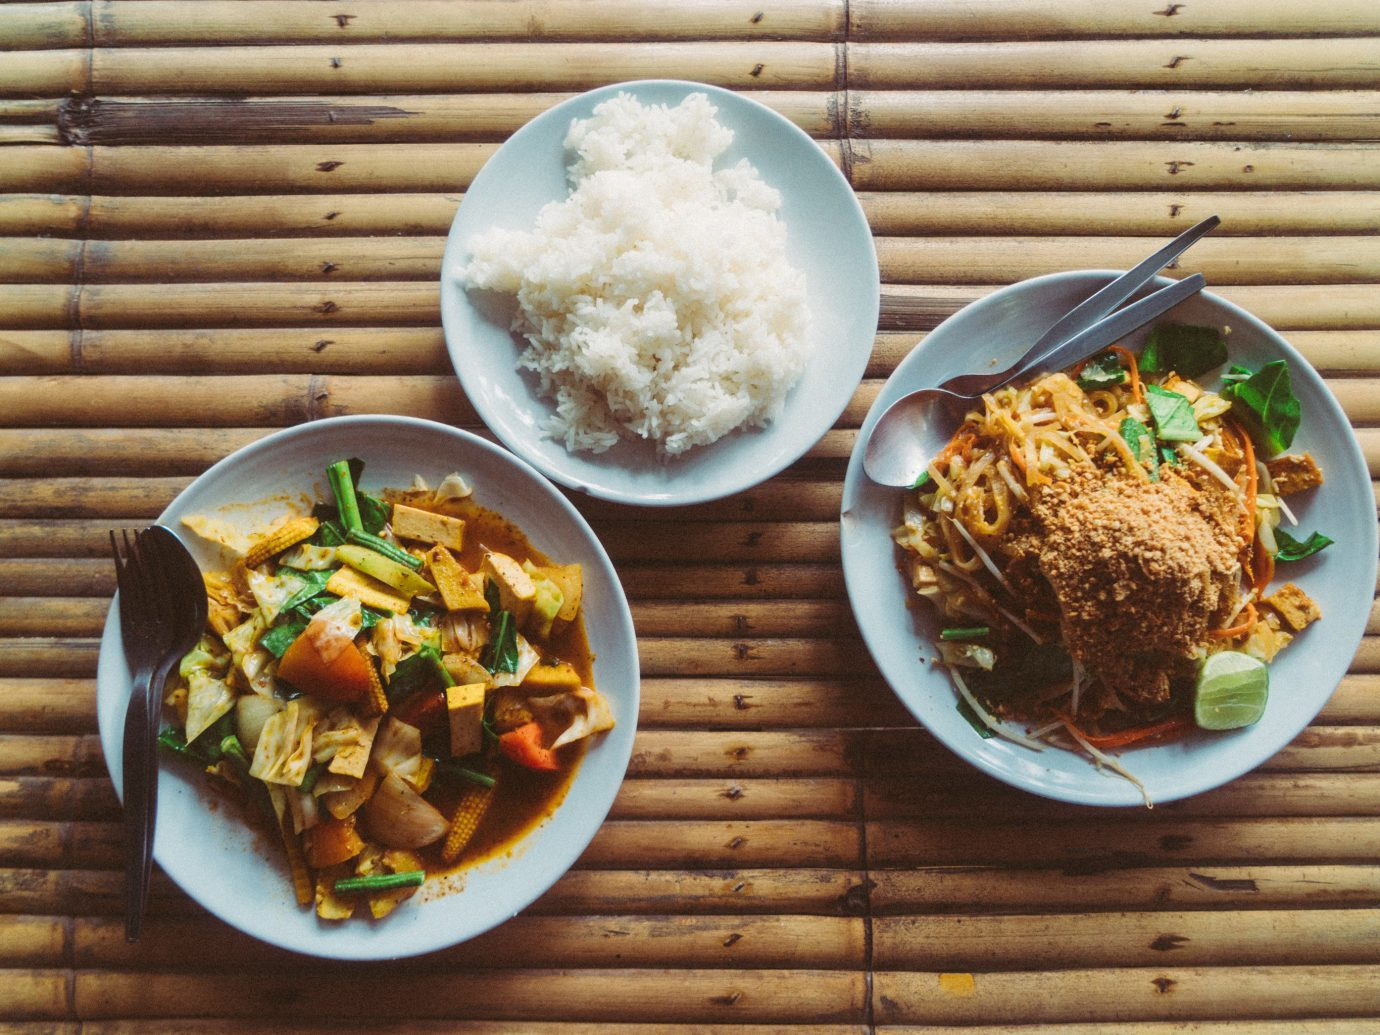 Jetsetter Guides food plate table dish meal cuisine produce slice breakfast lunch coconut asian food vegetarian food bread sliced